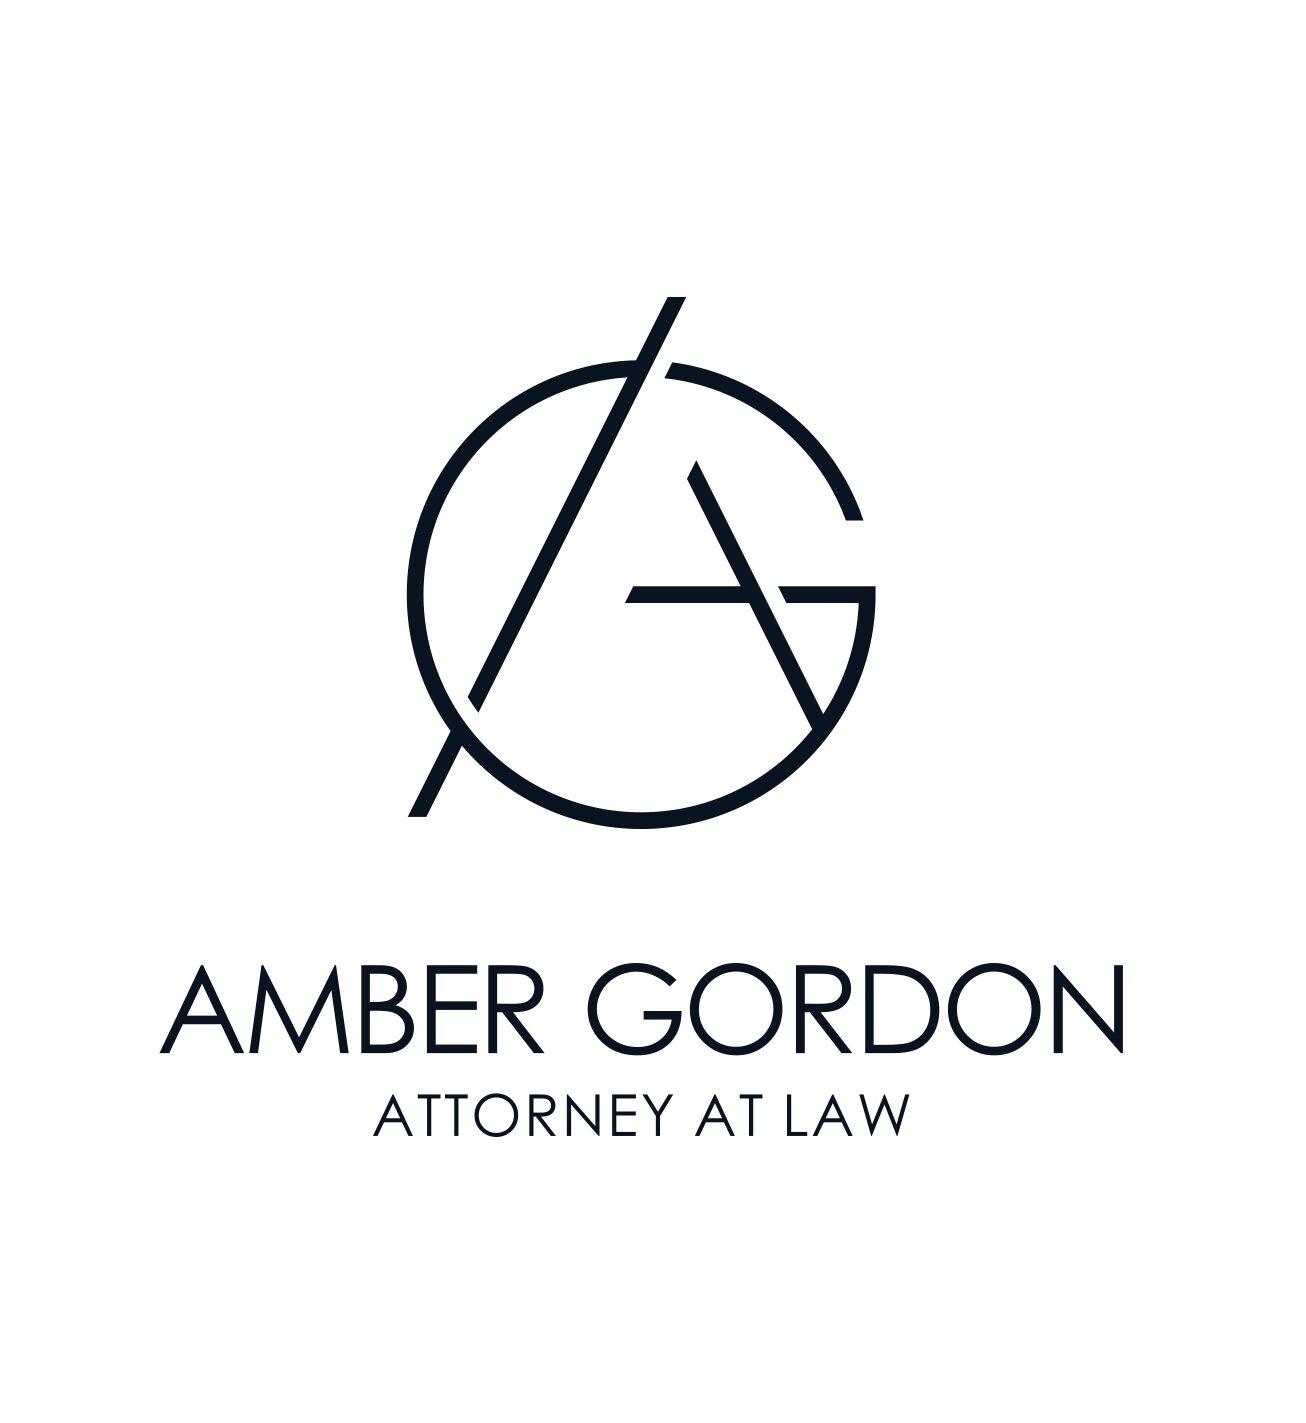 Amber Gordon Attorney at Law